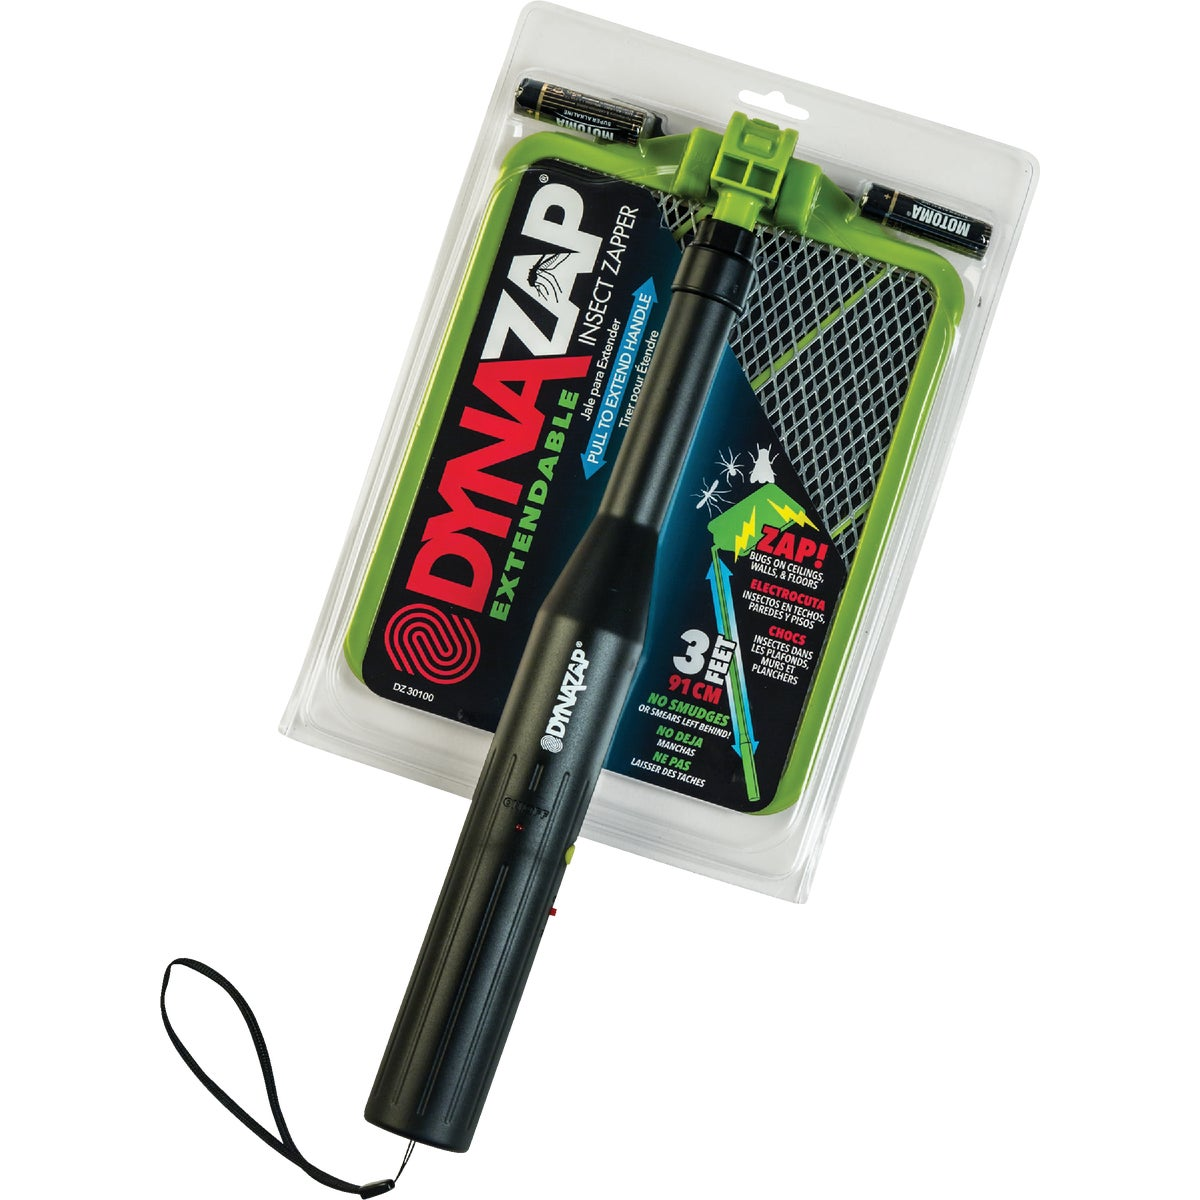 EXTENDABLE INSECT ZAPPER - DZ30100 by Dynamic Solutions